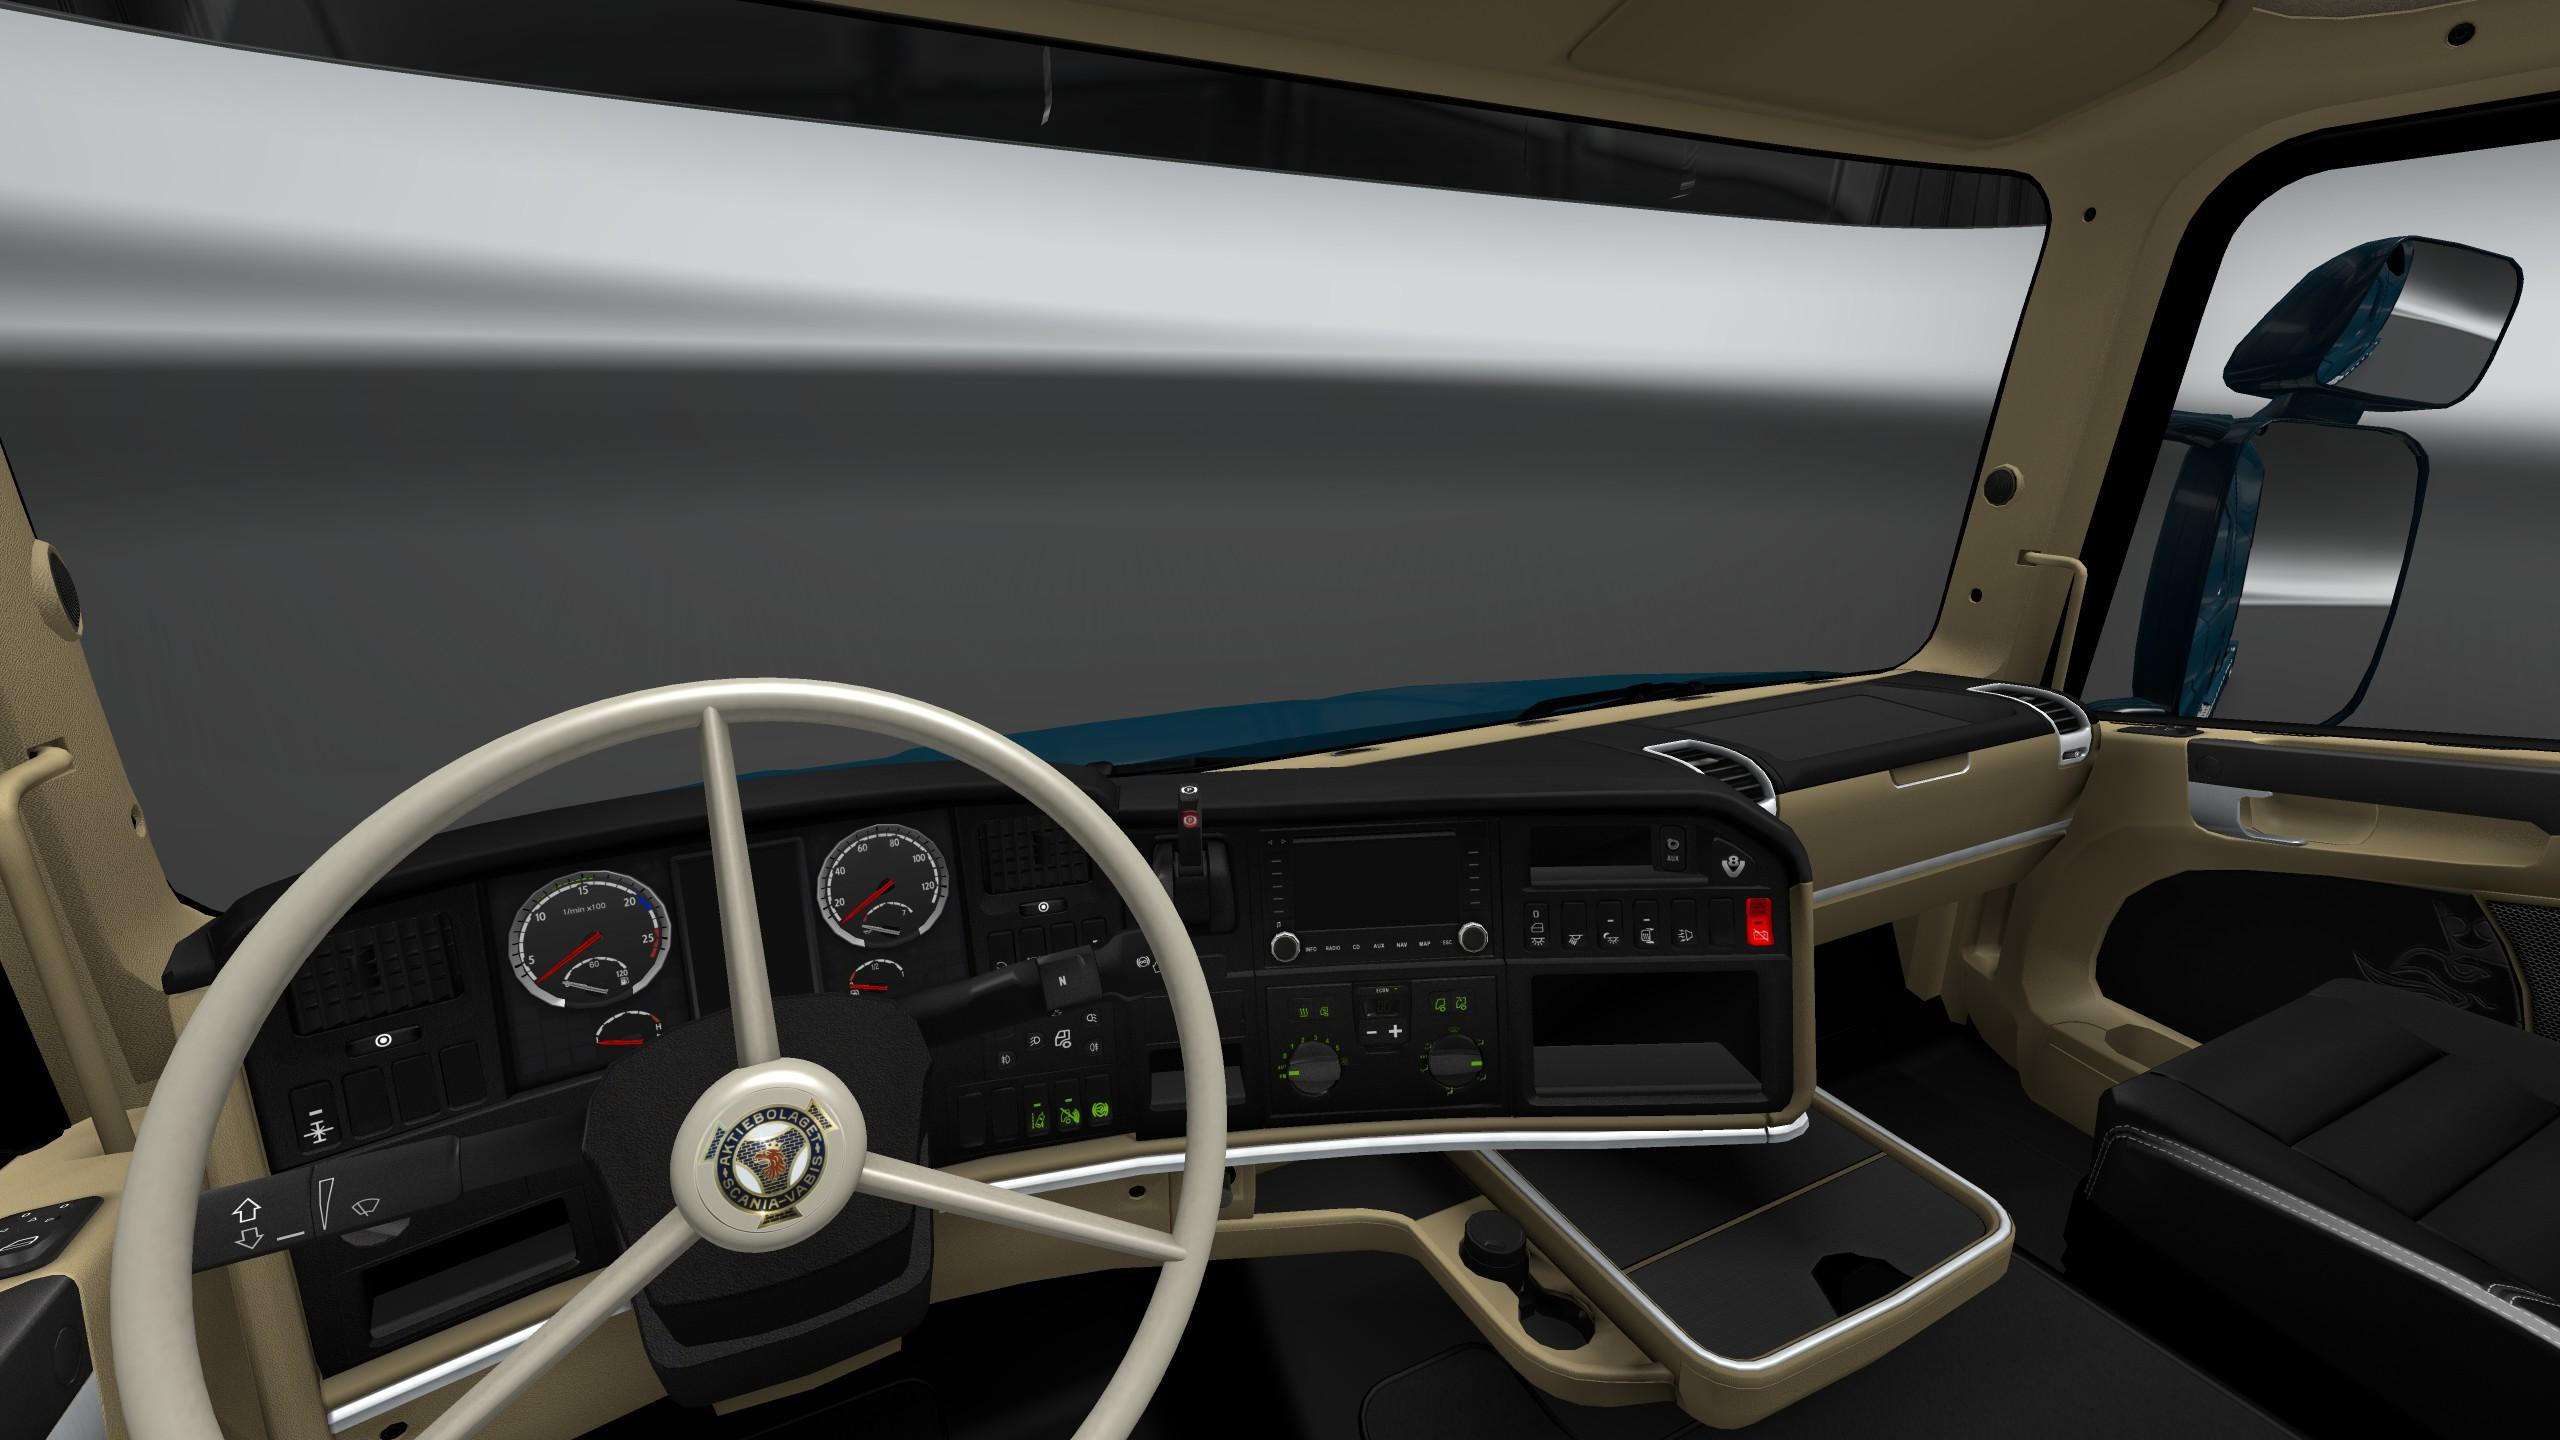 Scania trucks interiors exteriors improvements pack for ets2 mod is suitable for scs